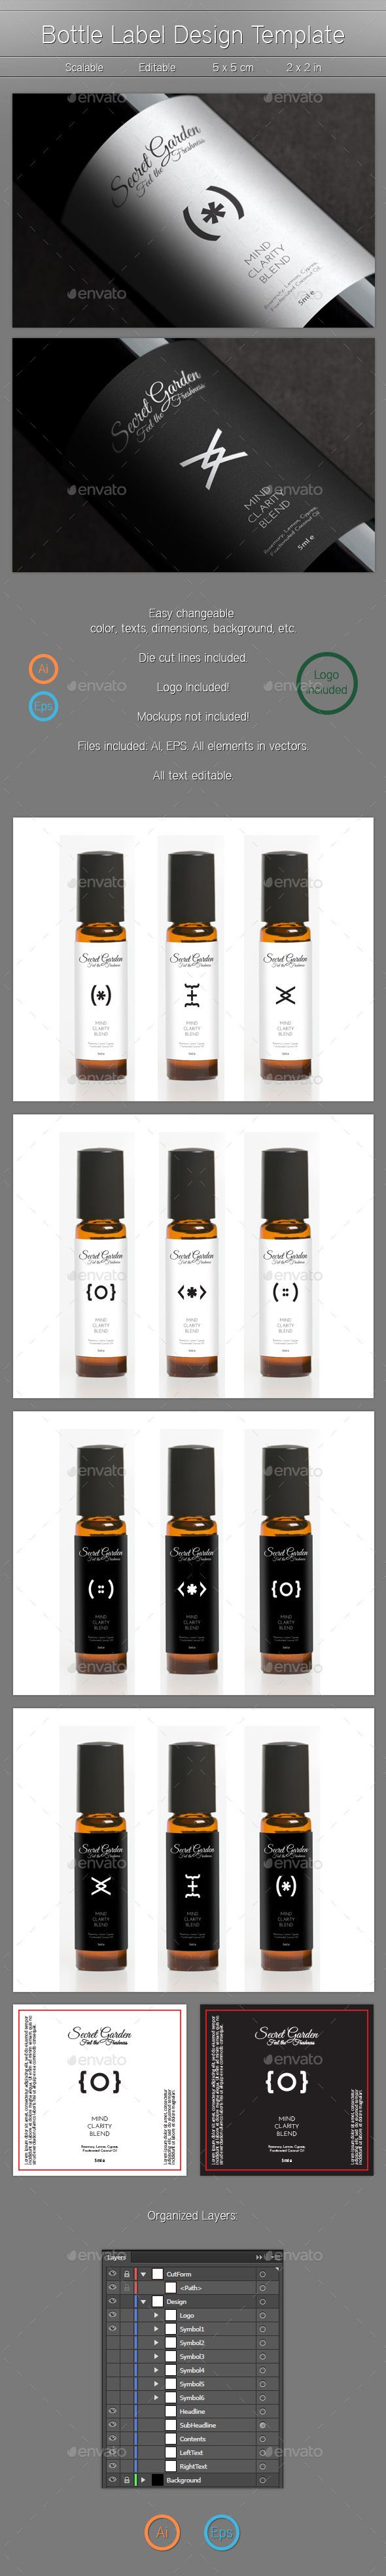 the 441 best images about packaging template on pinterest